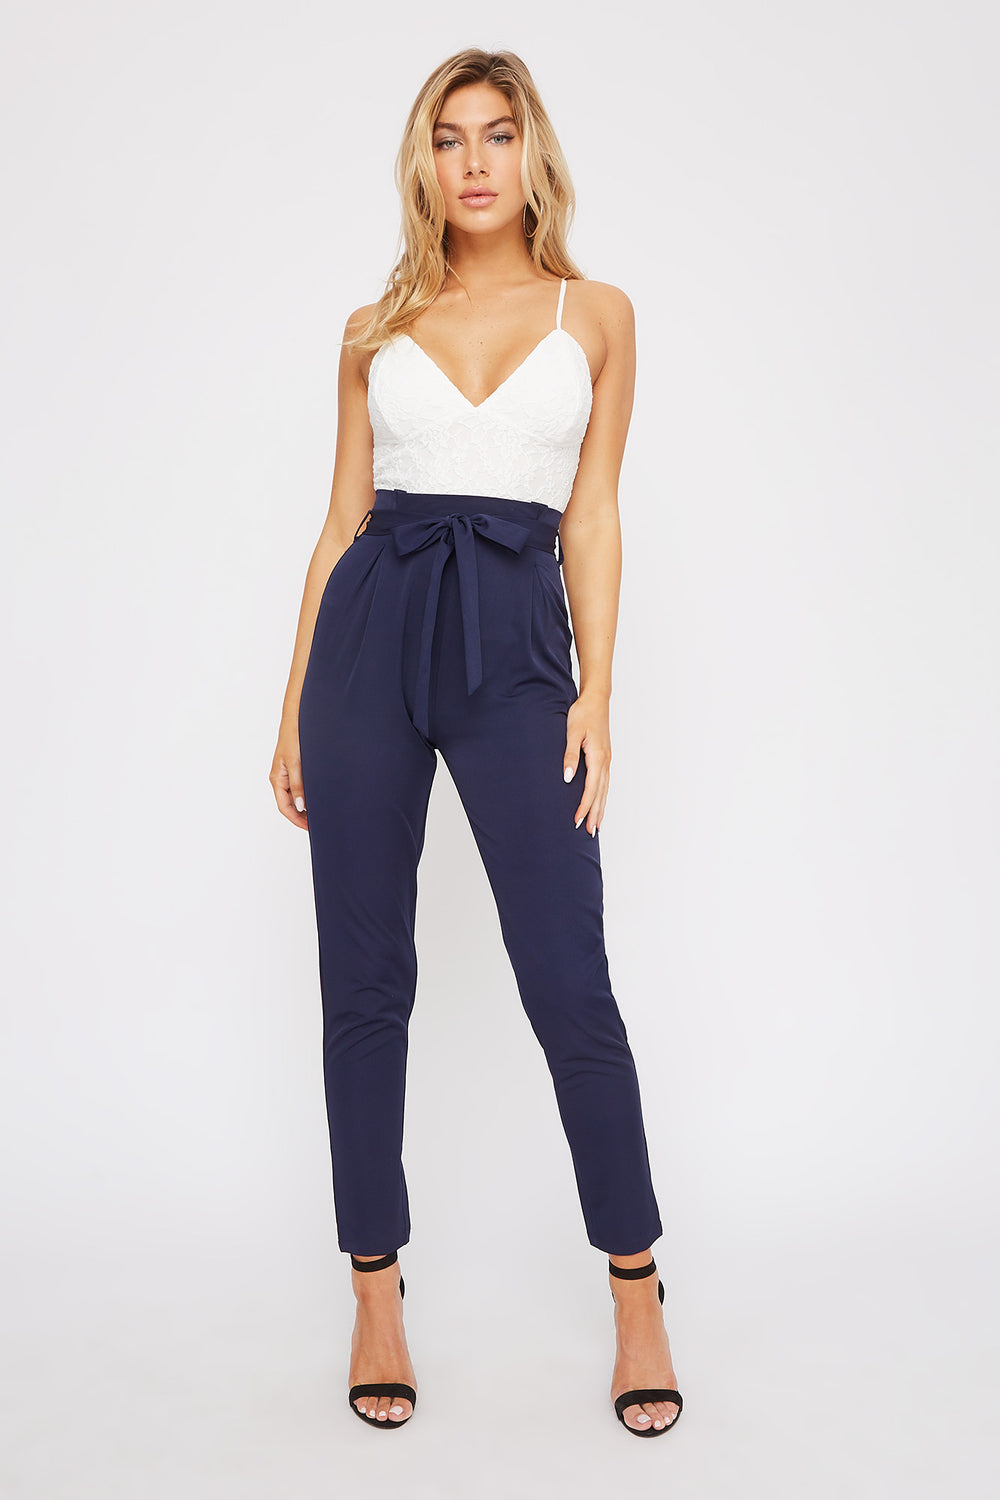 Lace Contrast Straight Leg Jumpsuit Navy